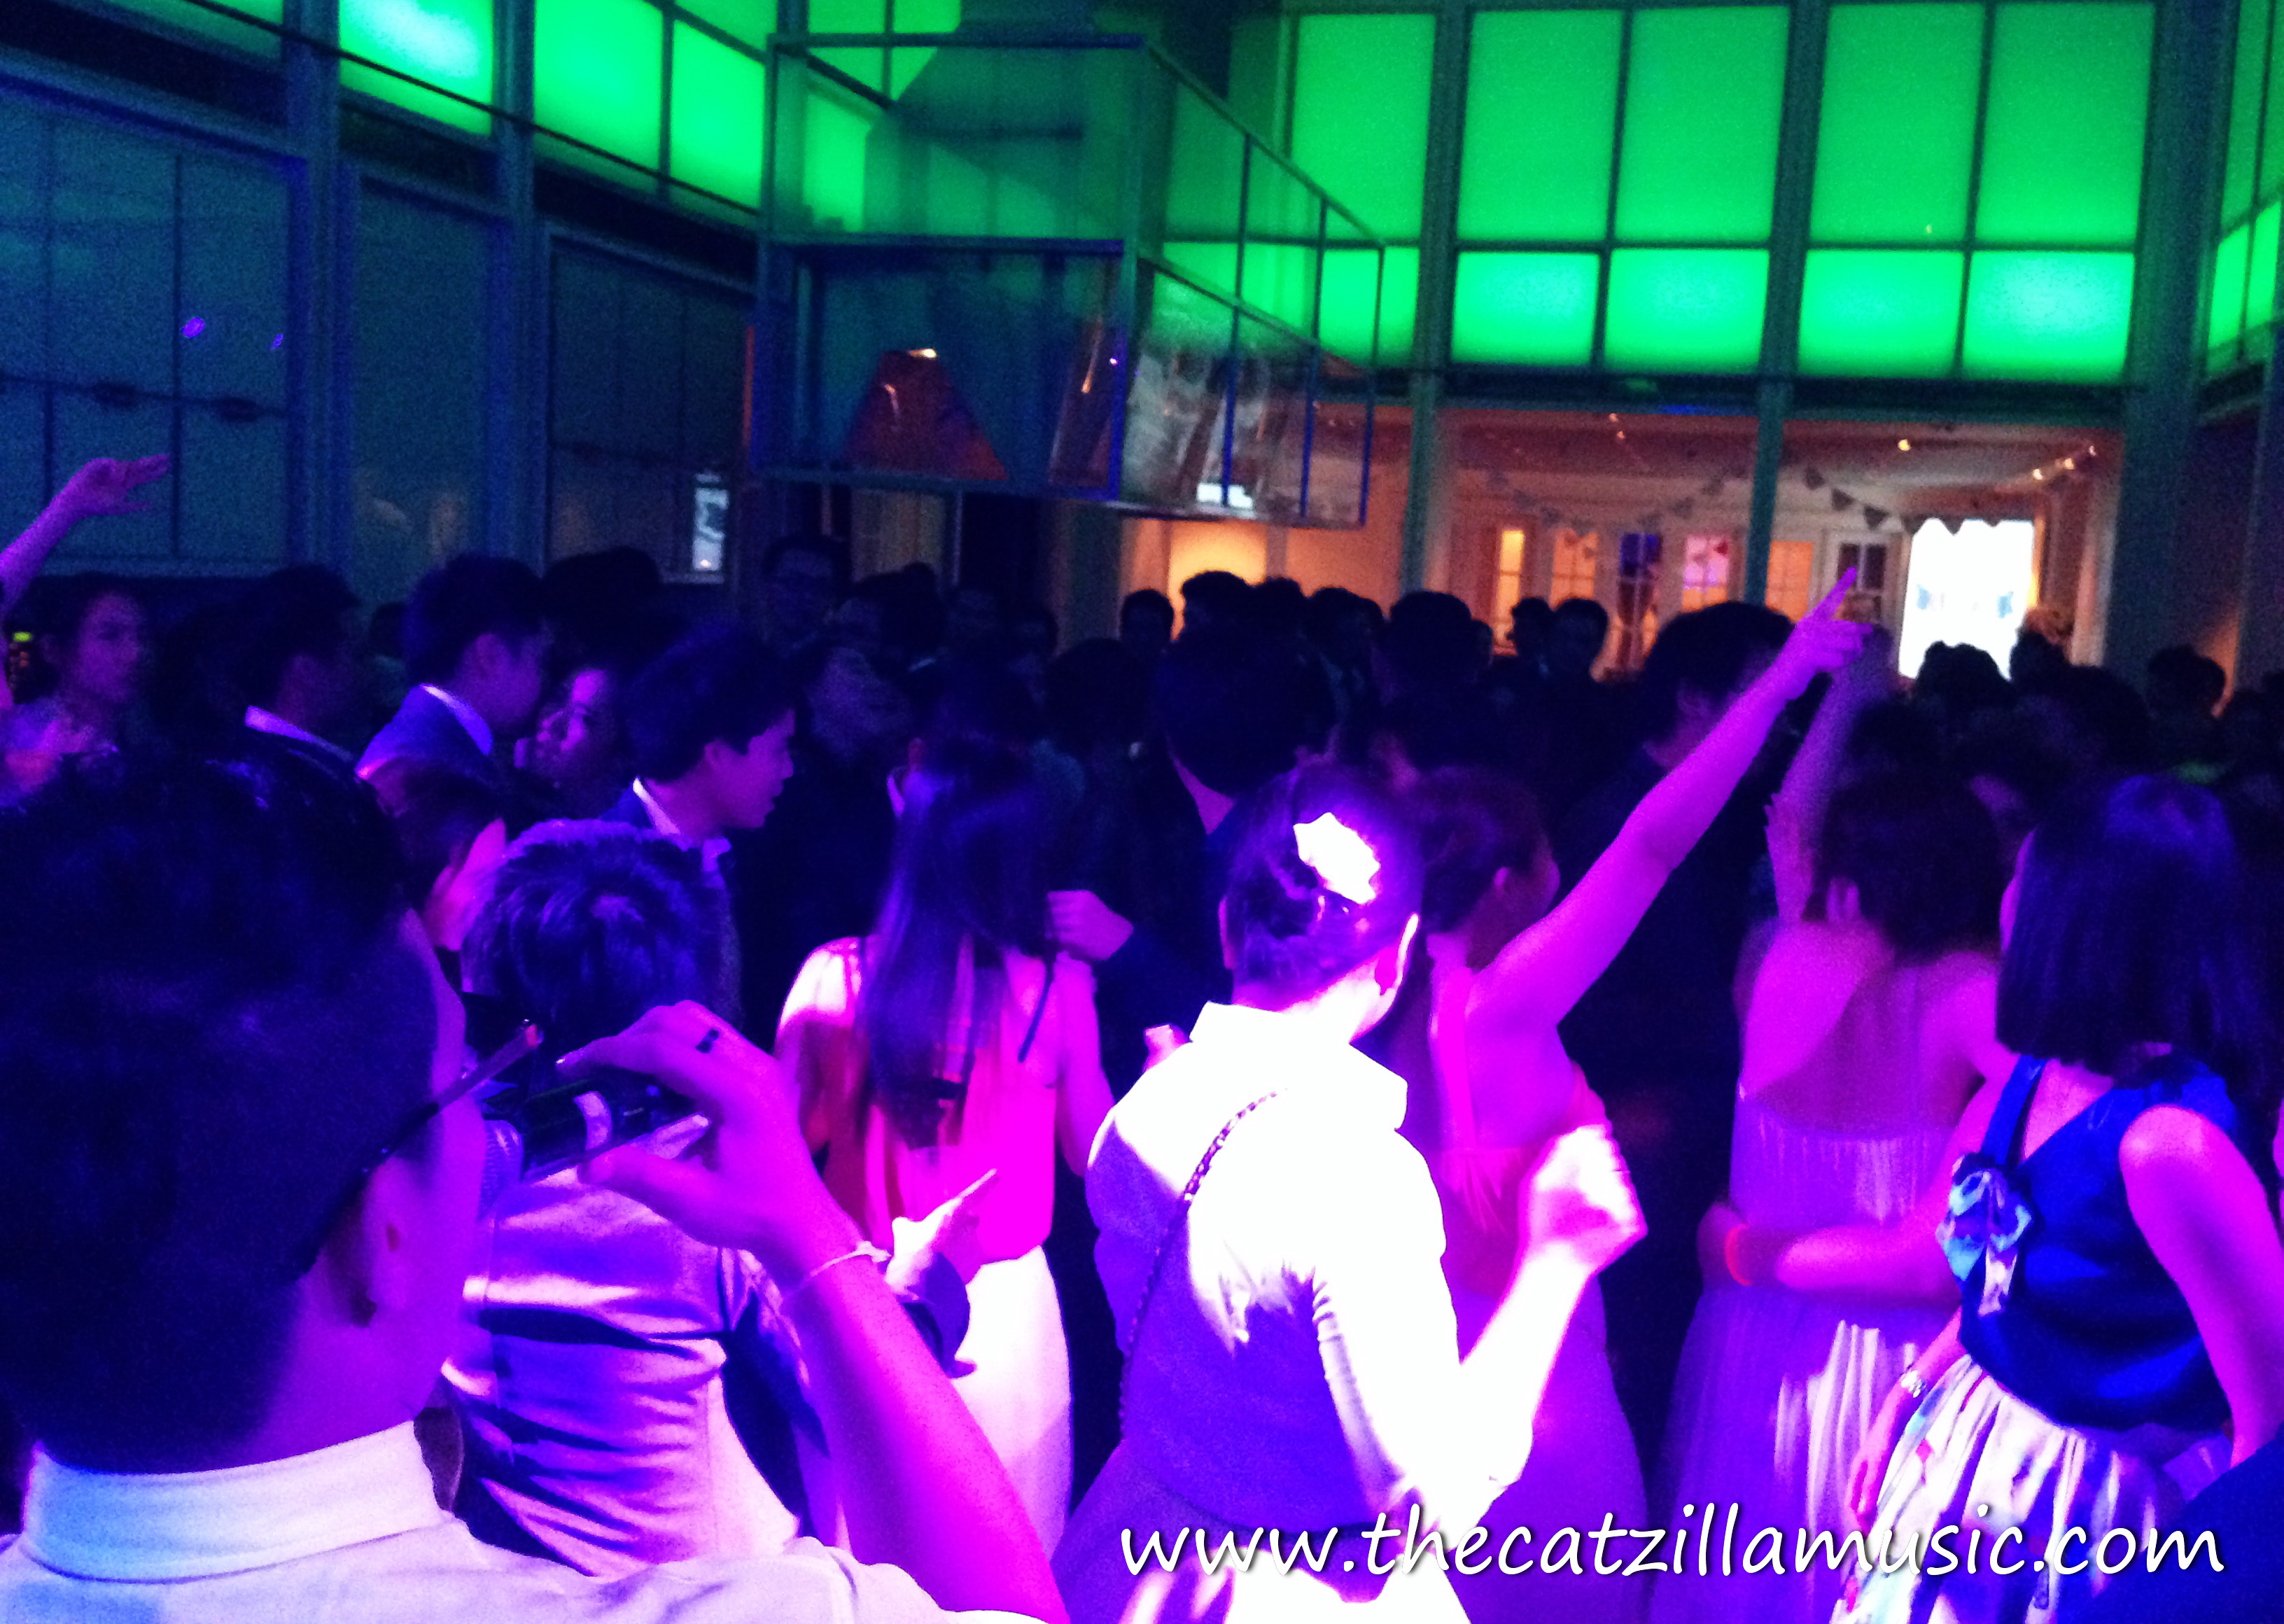 After Party Wedding บุ๋นแบนด์ Catzilla